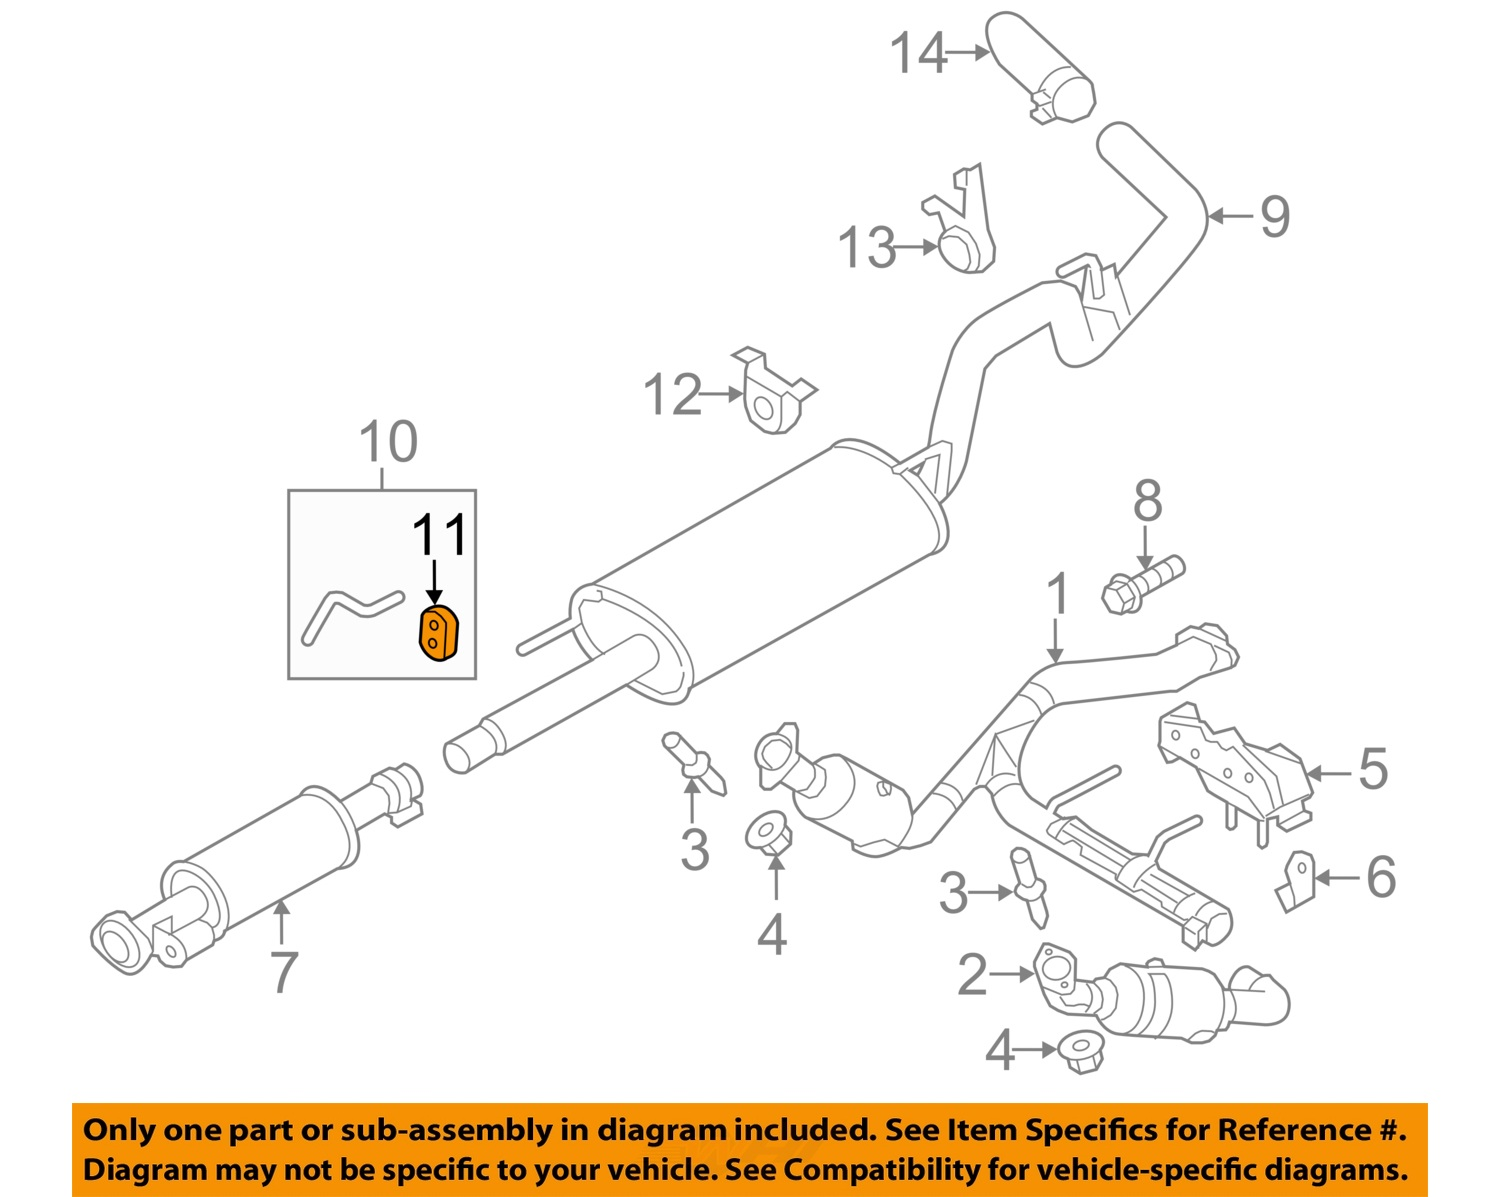 2000 ford explorer exhaust diagram 2004 toyota celica audio wiring f 150 system auto parts